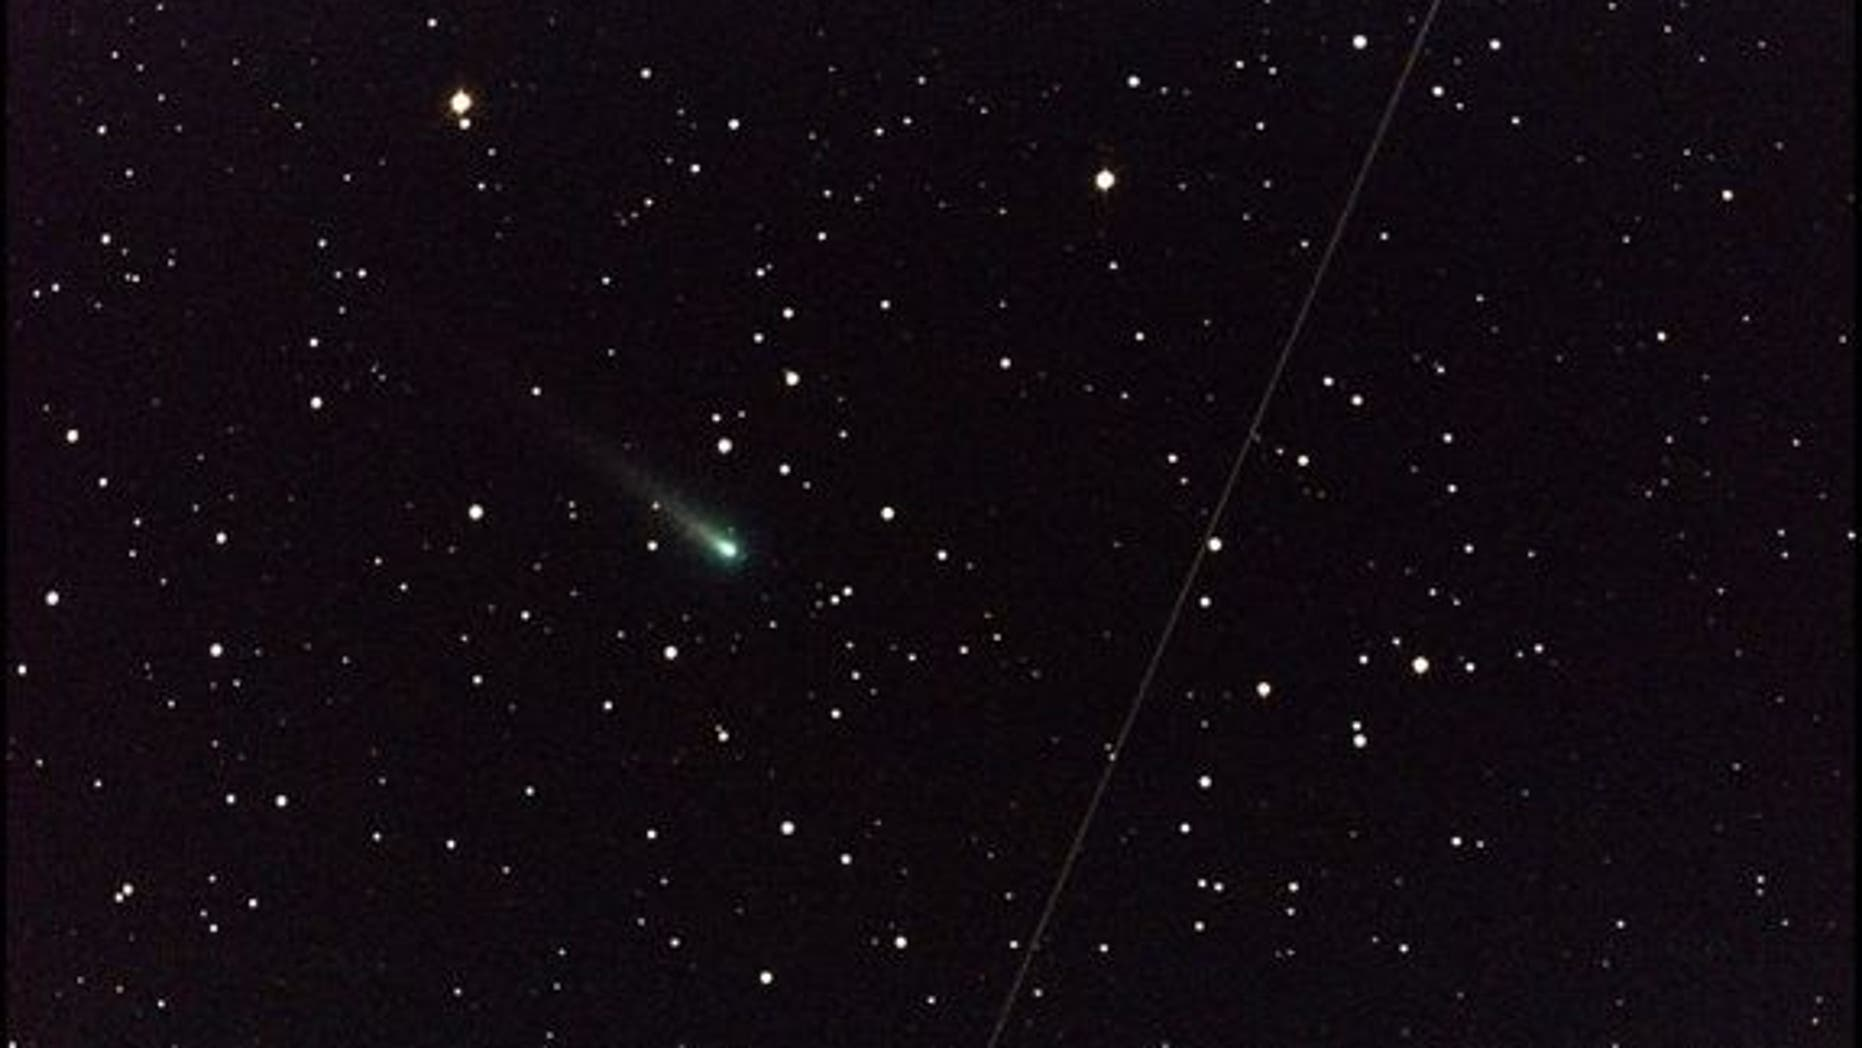 "In the early morning of Oct. 25, 2013, NASA's Marshall Space Flight Center in Huntsville, Ala., used a 14"" telescope to capture this image of Comet ISON (the greenish object just left of center) cruising through the constellation of Leo the Lio"